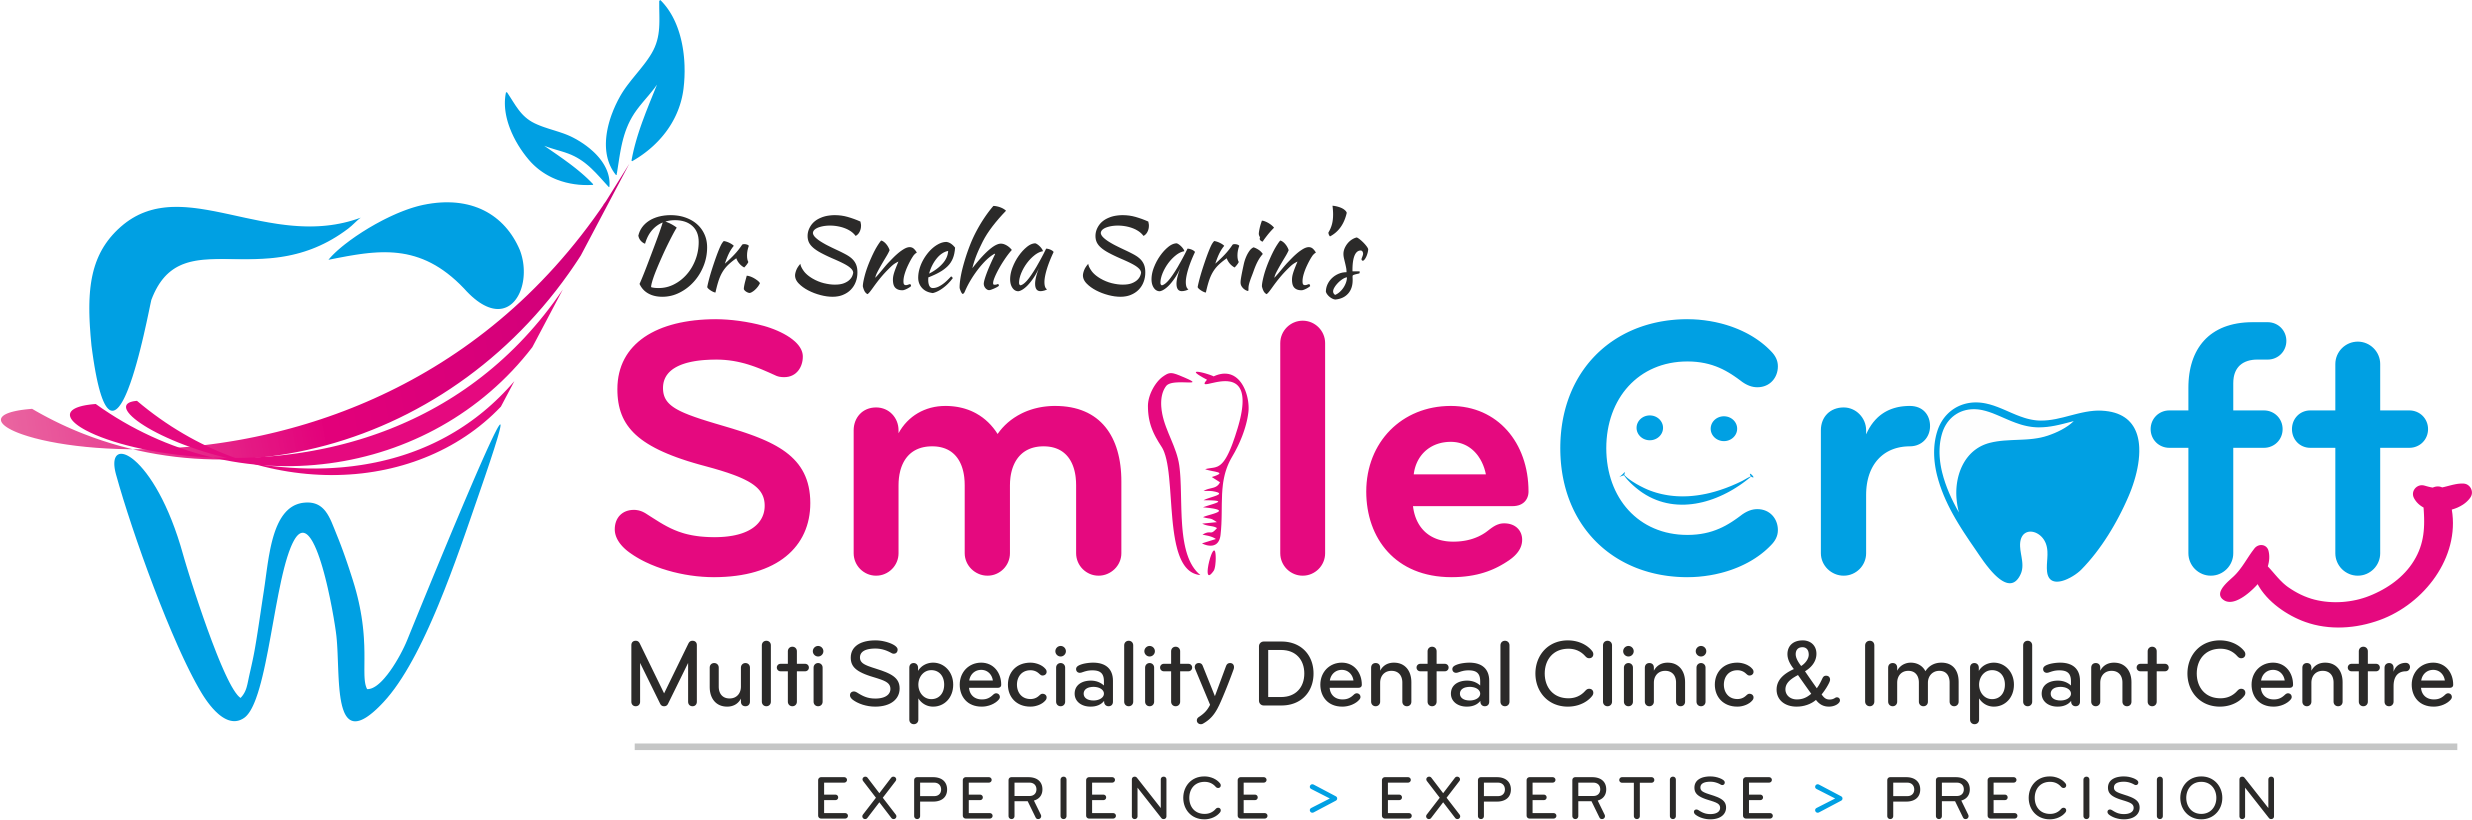 Image result for Smile Craft dehradun